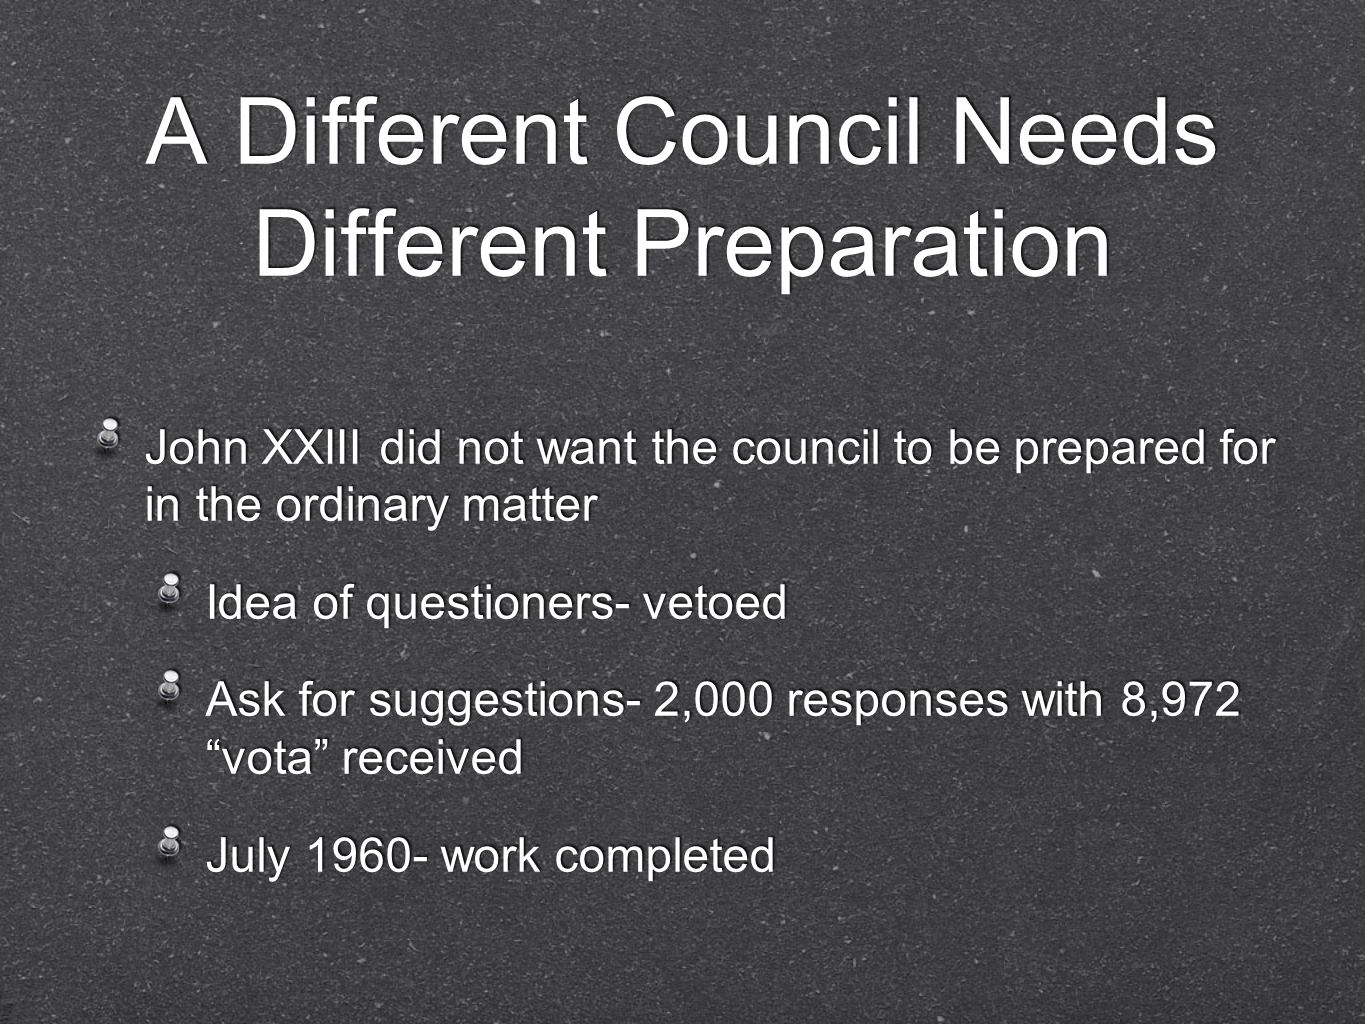 A Different Council Needs Different Preparation